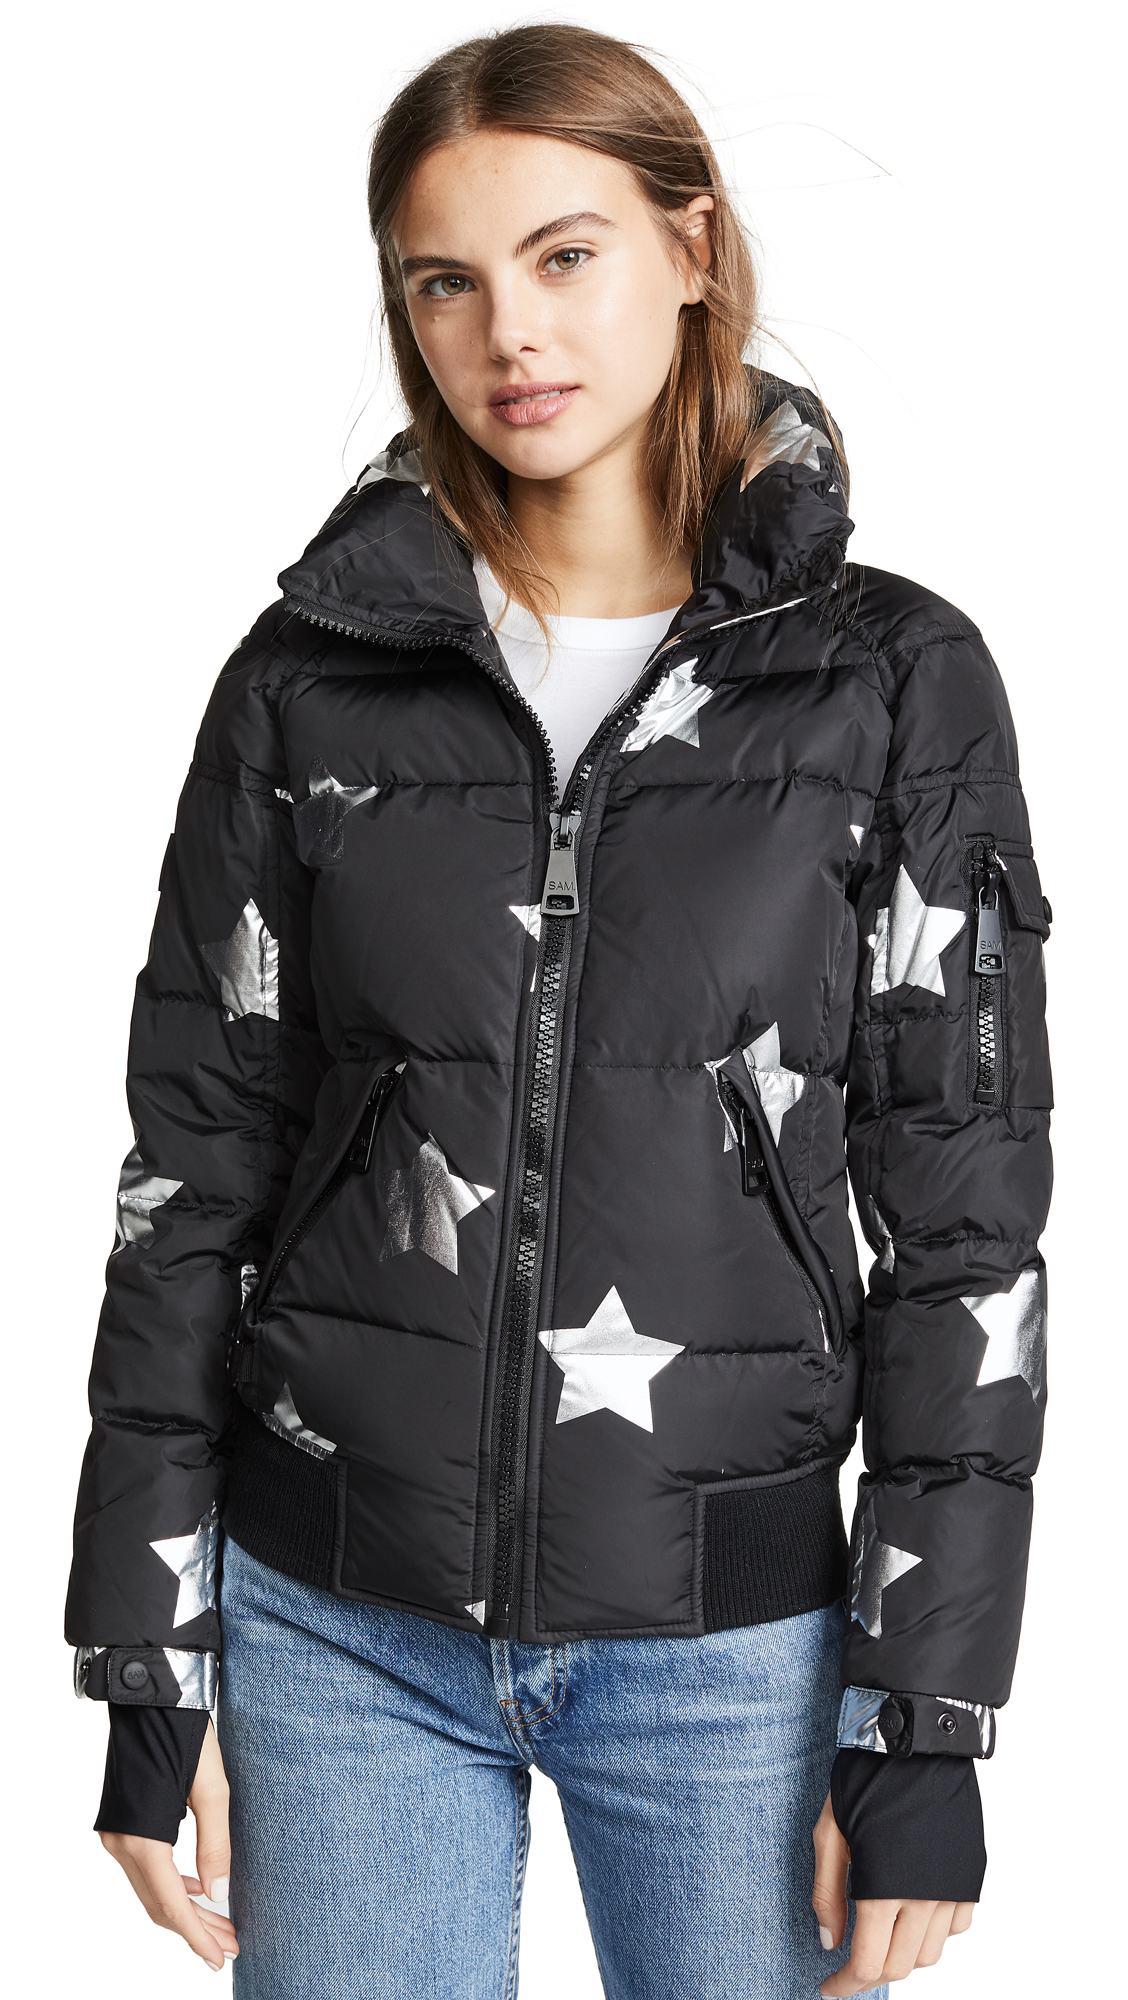 SAM Stars Freestyle Bomber Jacket in Black/Silver Stars